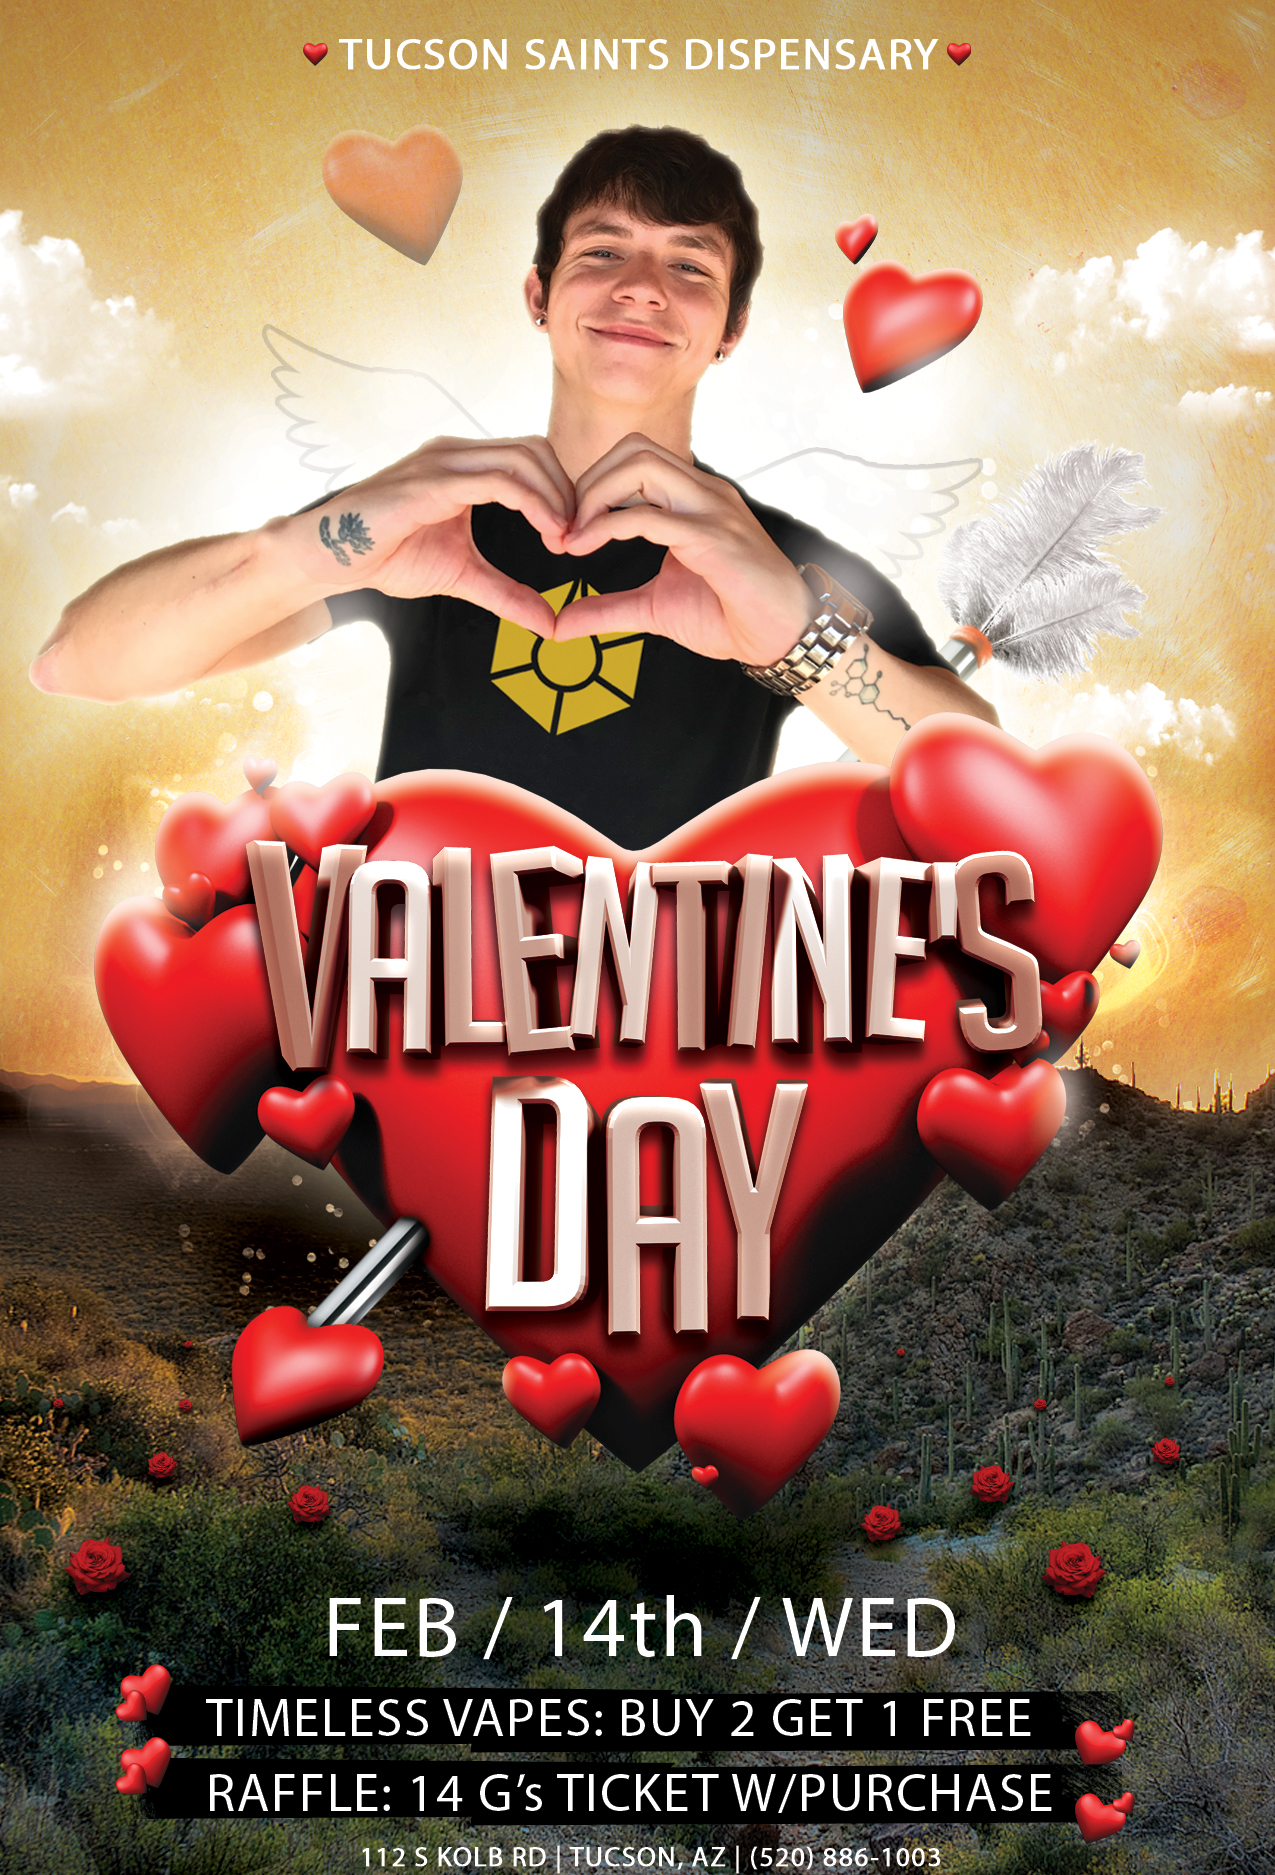 Valentines-Day-Flyer-Tucson-SAINTS-Timeless-alfonso